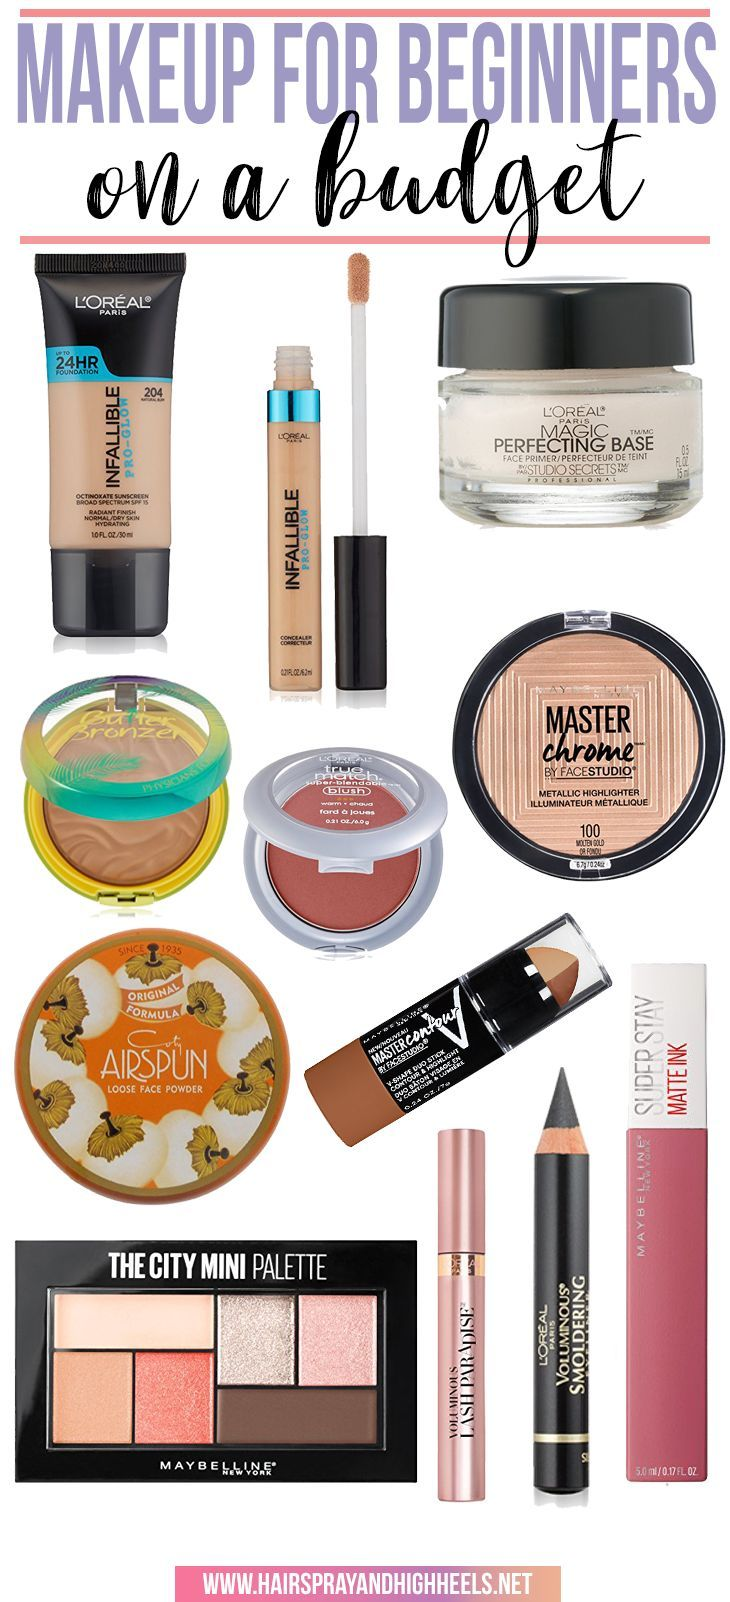 BOOKMARK THIS! An entire makeup collection for under $90. This is the perfect Makeup for Beginners.